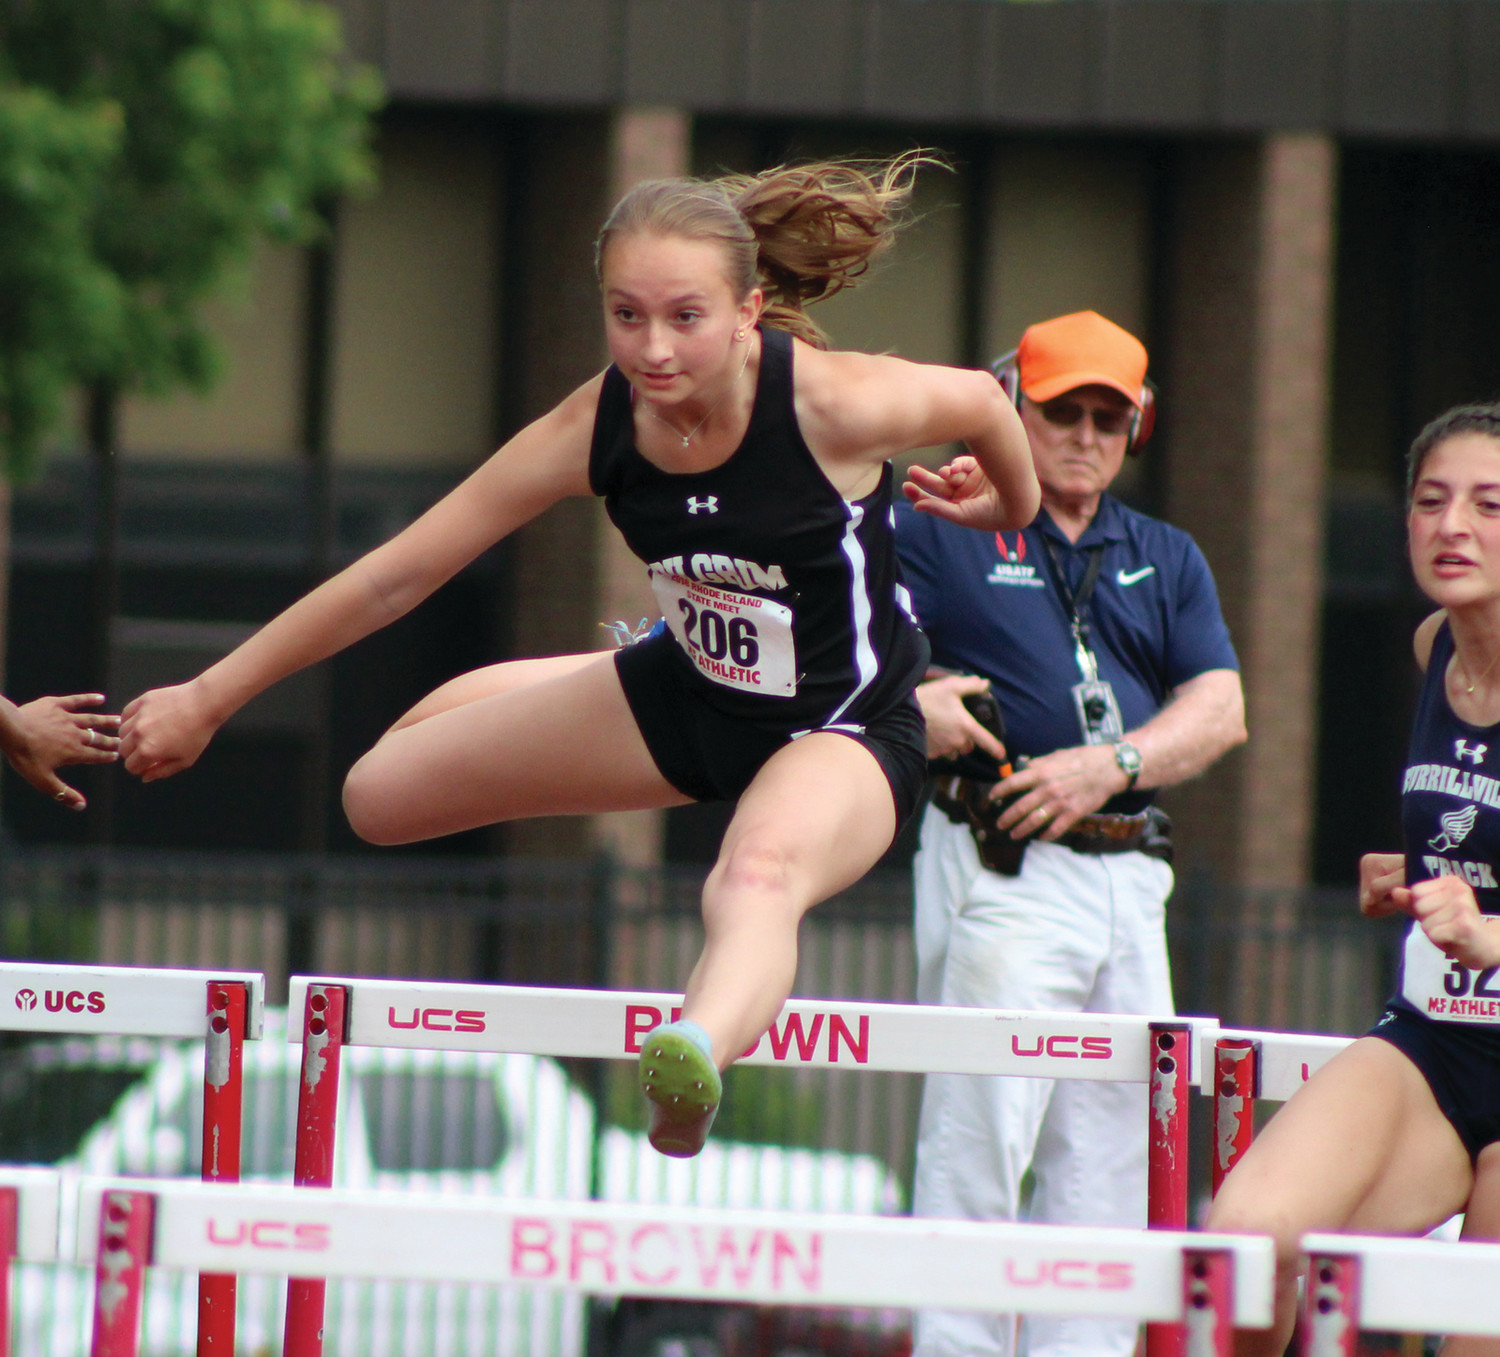 EYE ON THE PRIZE: Pilgrim's Anna Cetera competes in the hurdles on Saturday at Brown Stadium.